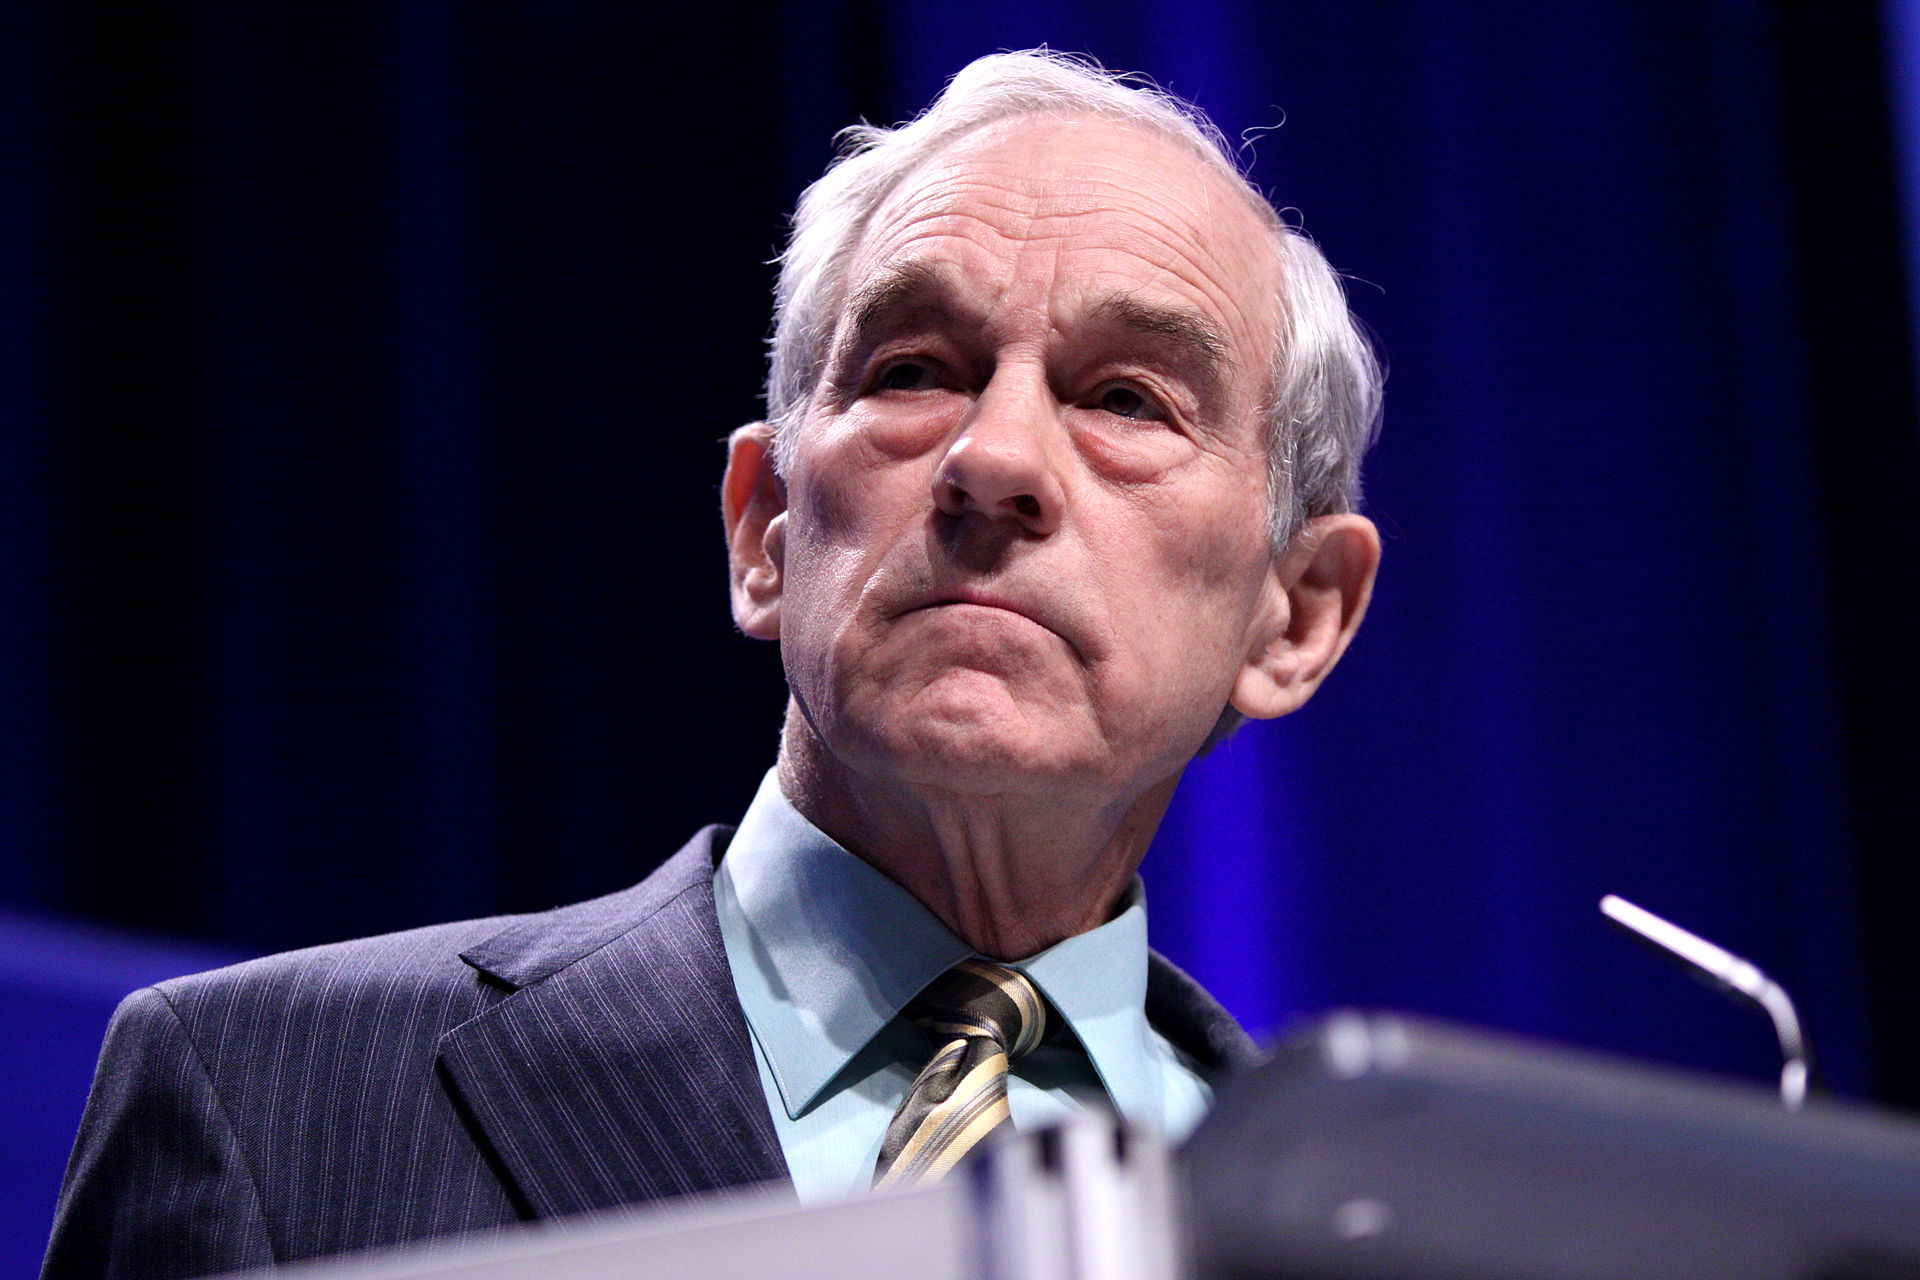 Ron Paul Calls for Market Meltdown, Warns That Stocks Are 'Destined to Go down' as Much as 50 Percent